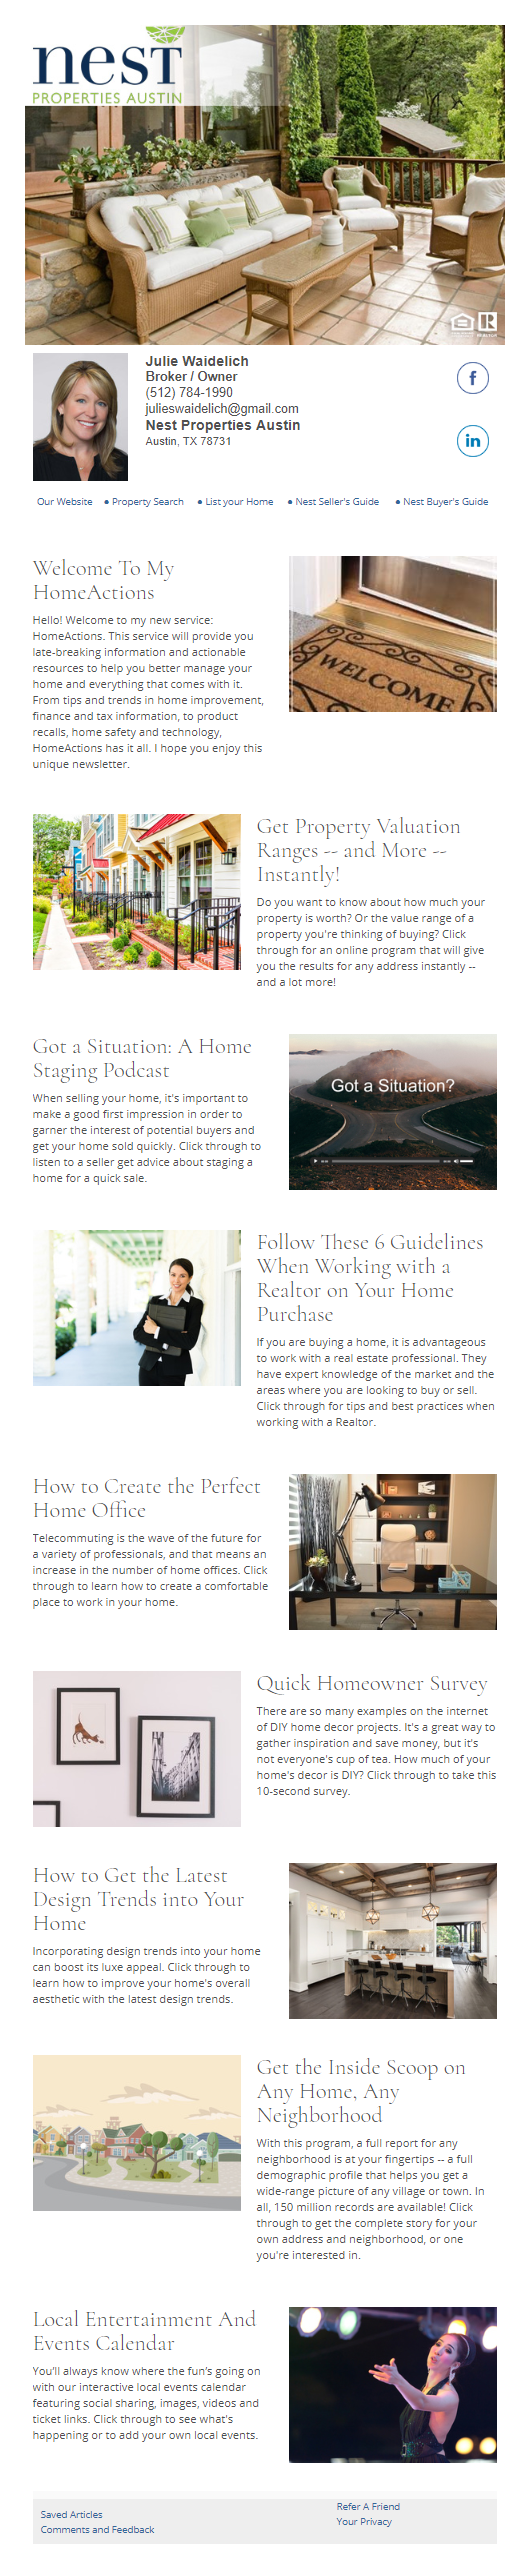 Nest Properties Austin - HomeActions Sample Email Newsletter